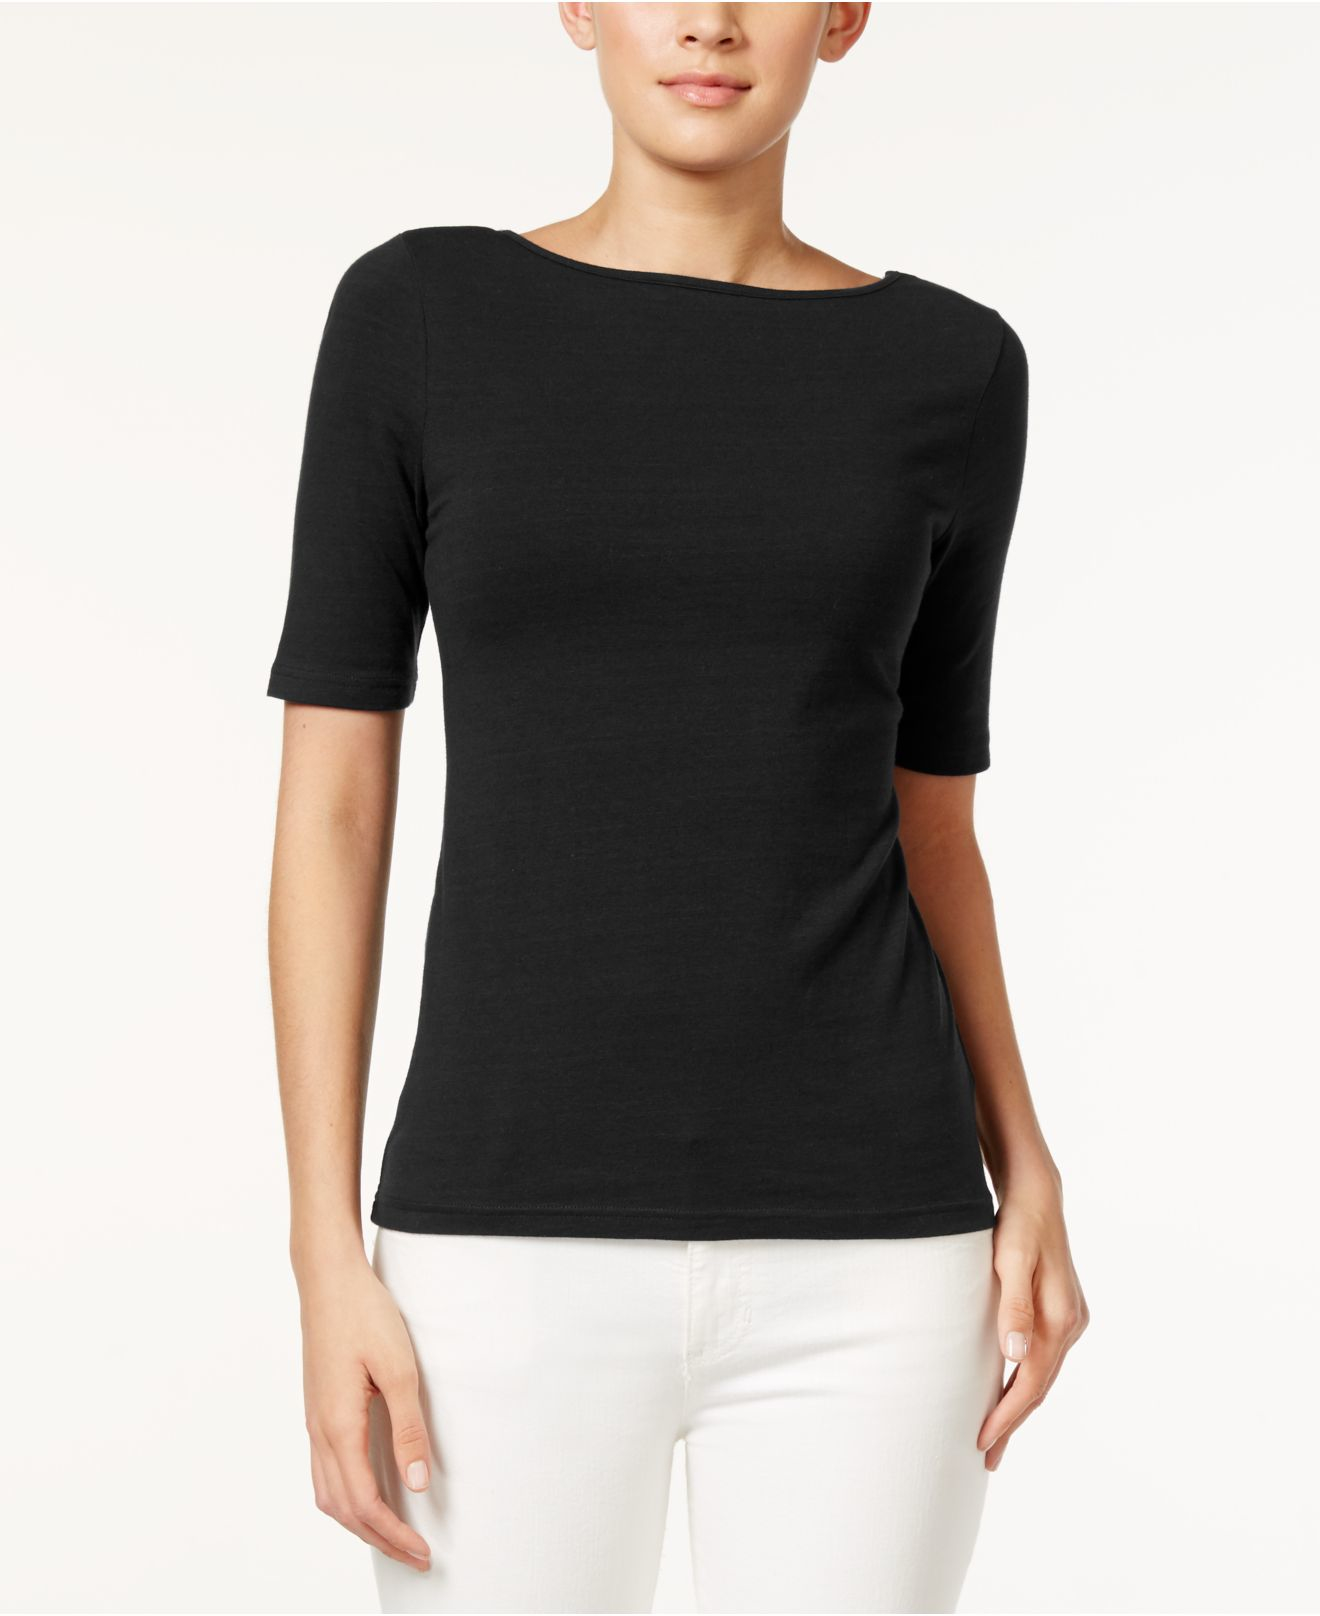 Sep 24, · Rated 5 out of 5 by Ann Sheep from Wrinkle free boat neck top Great colour and fit, love the style and length of the sleeves Date published: Rated 5 .